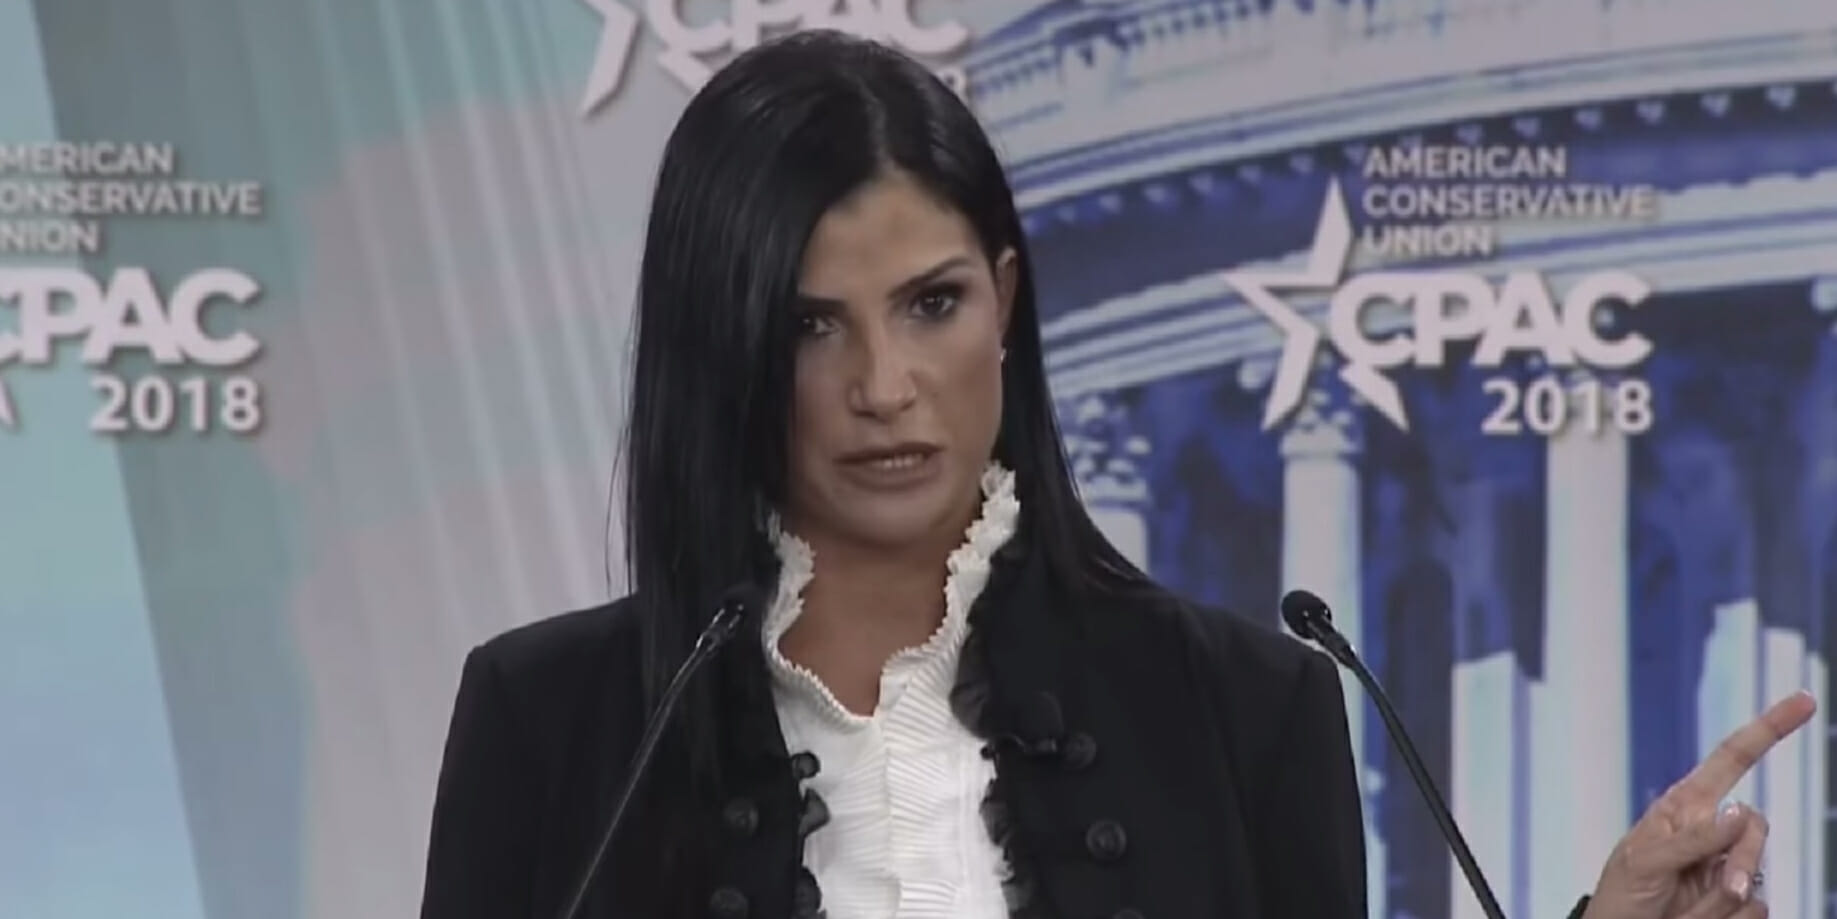 Dana Loesch speaking at CPAC 2018